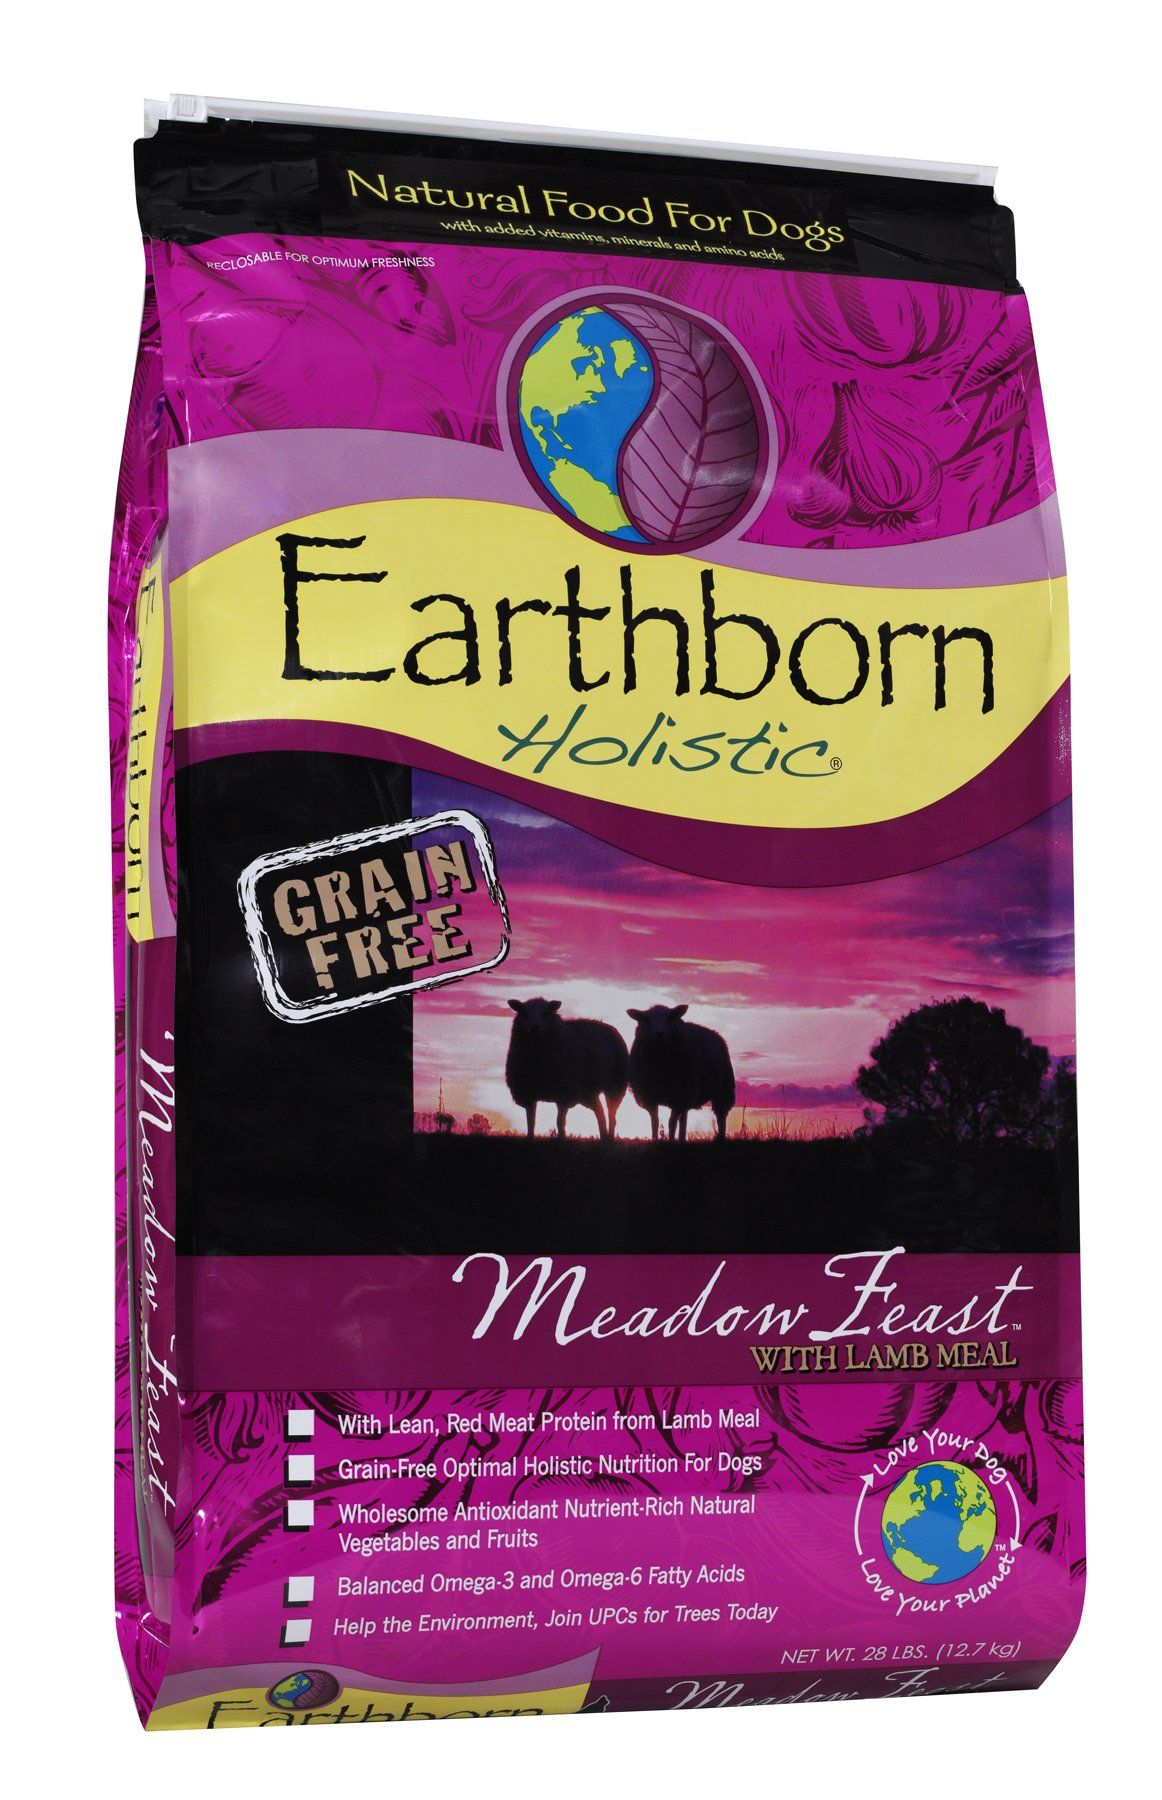 EARTHBORN HOLISTIC Meadow Feast 28 Pound Bag ** Want to